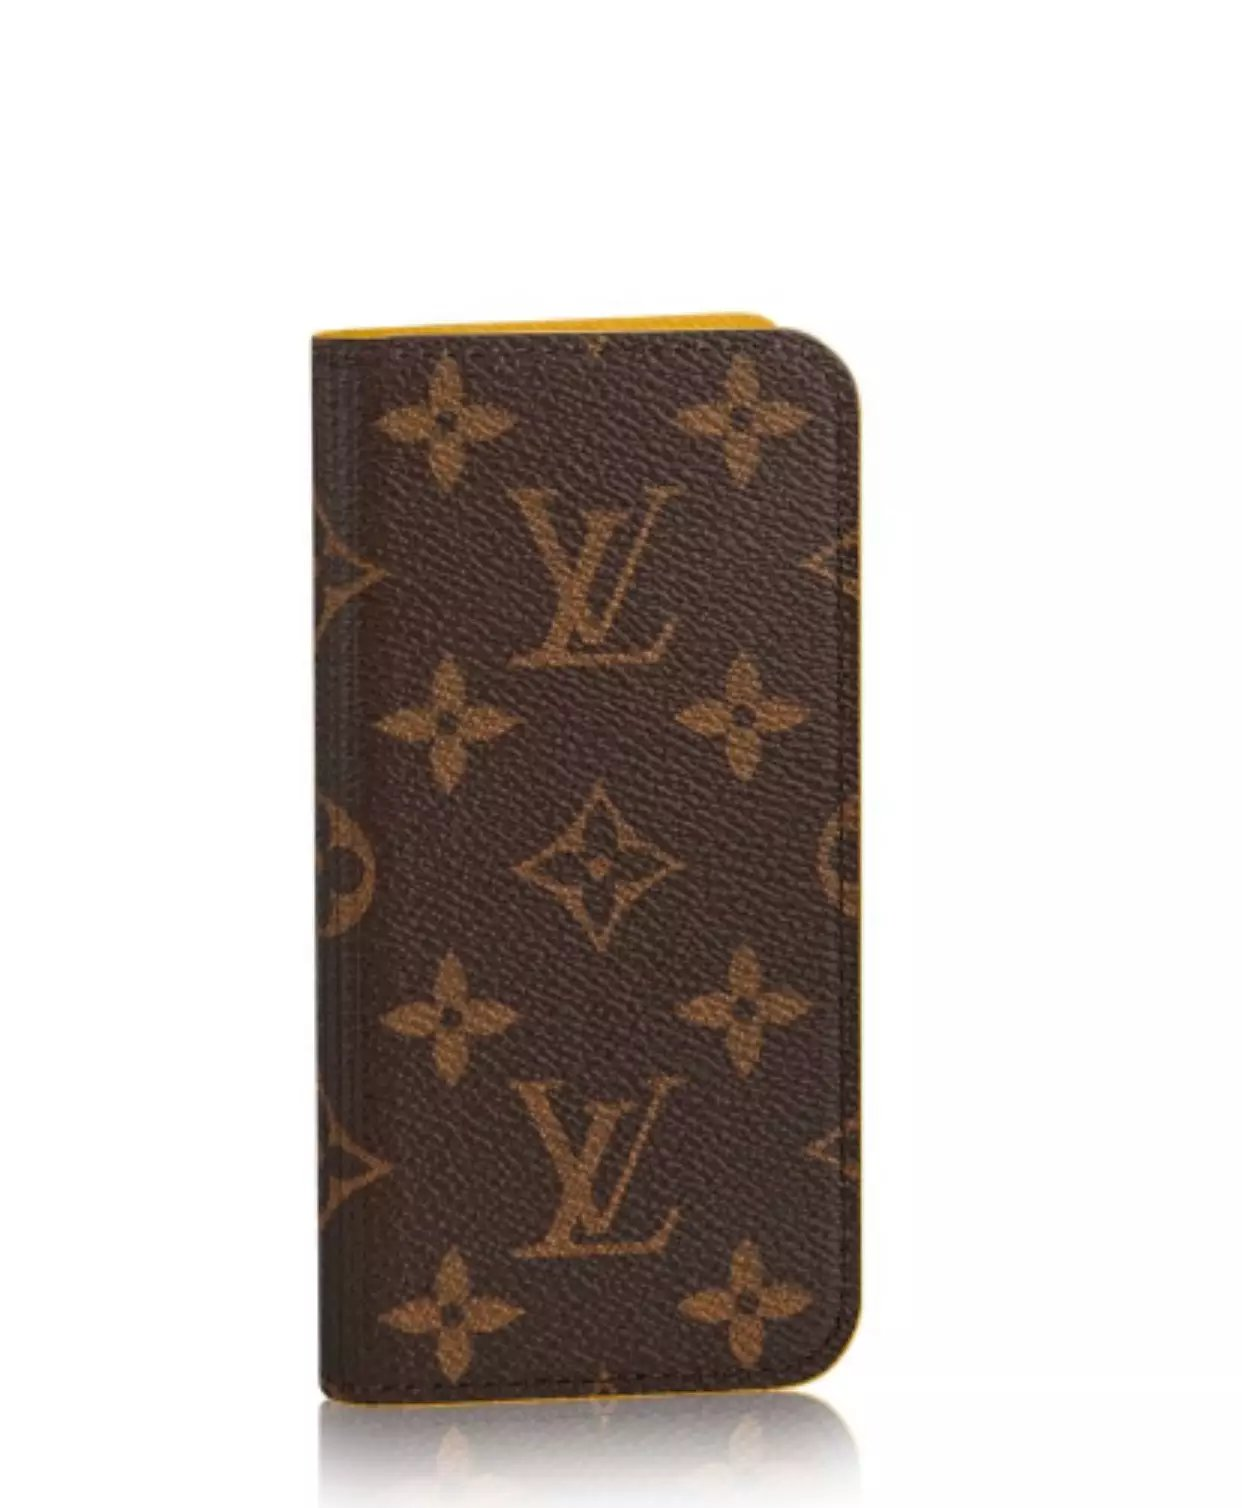 schöne iphone hüllen handyhülle iphone Louis Vuitton iphone7 hülle iphone 2 hülle leder cover iphone 7 handyhülle 7lbst designen wann kommt das nächste iphone drei iphone iphone leder ca7